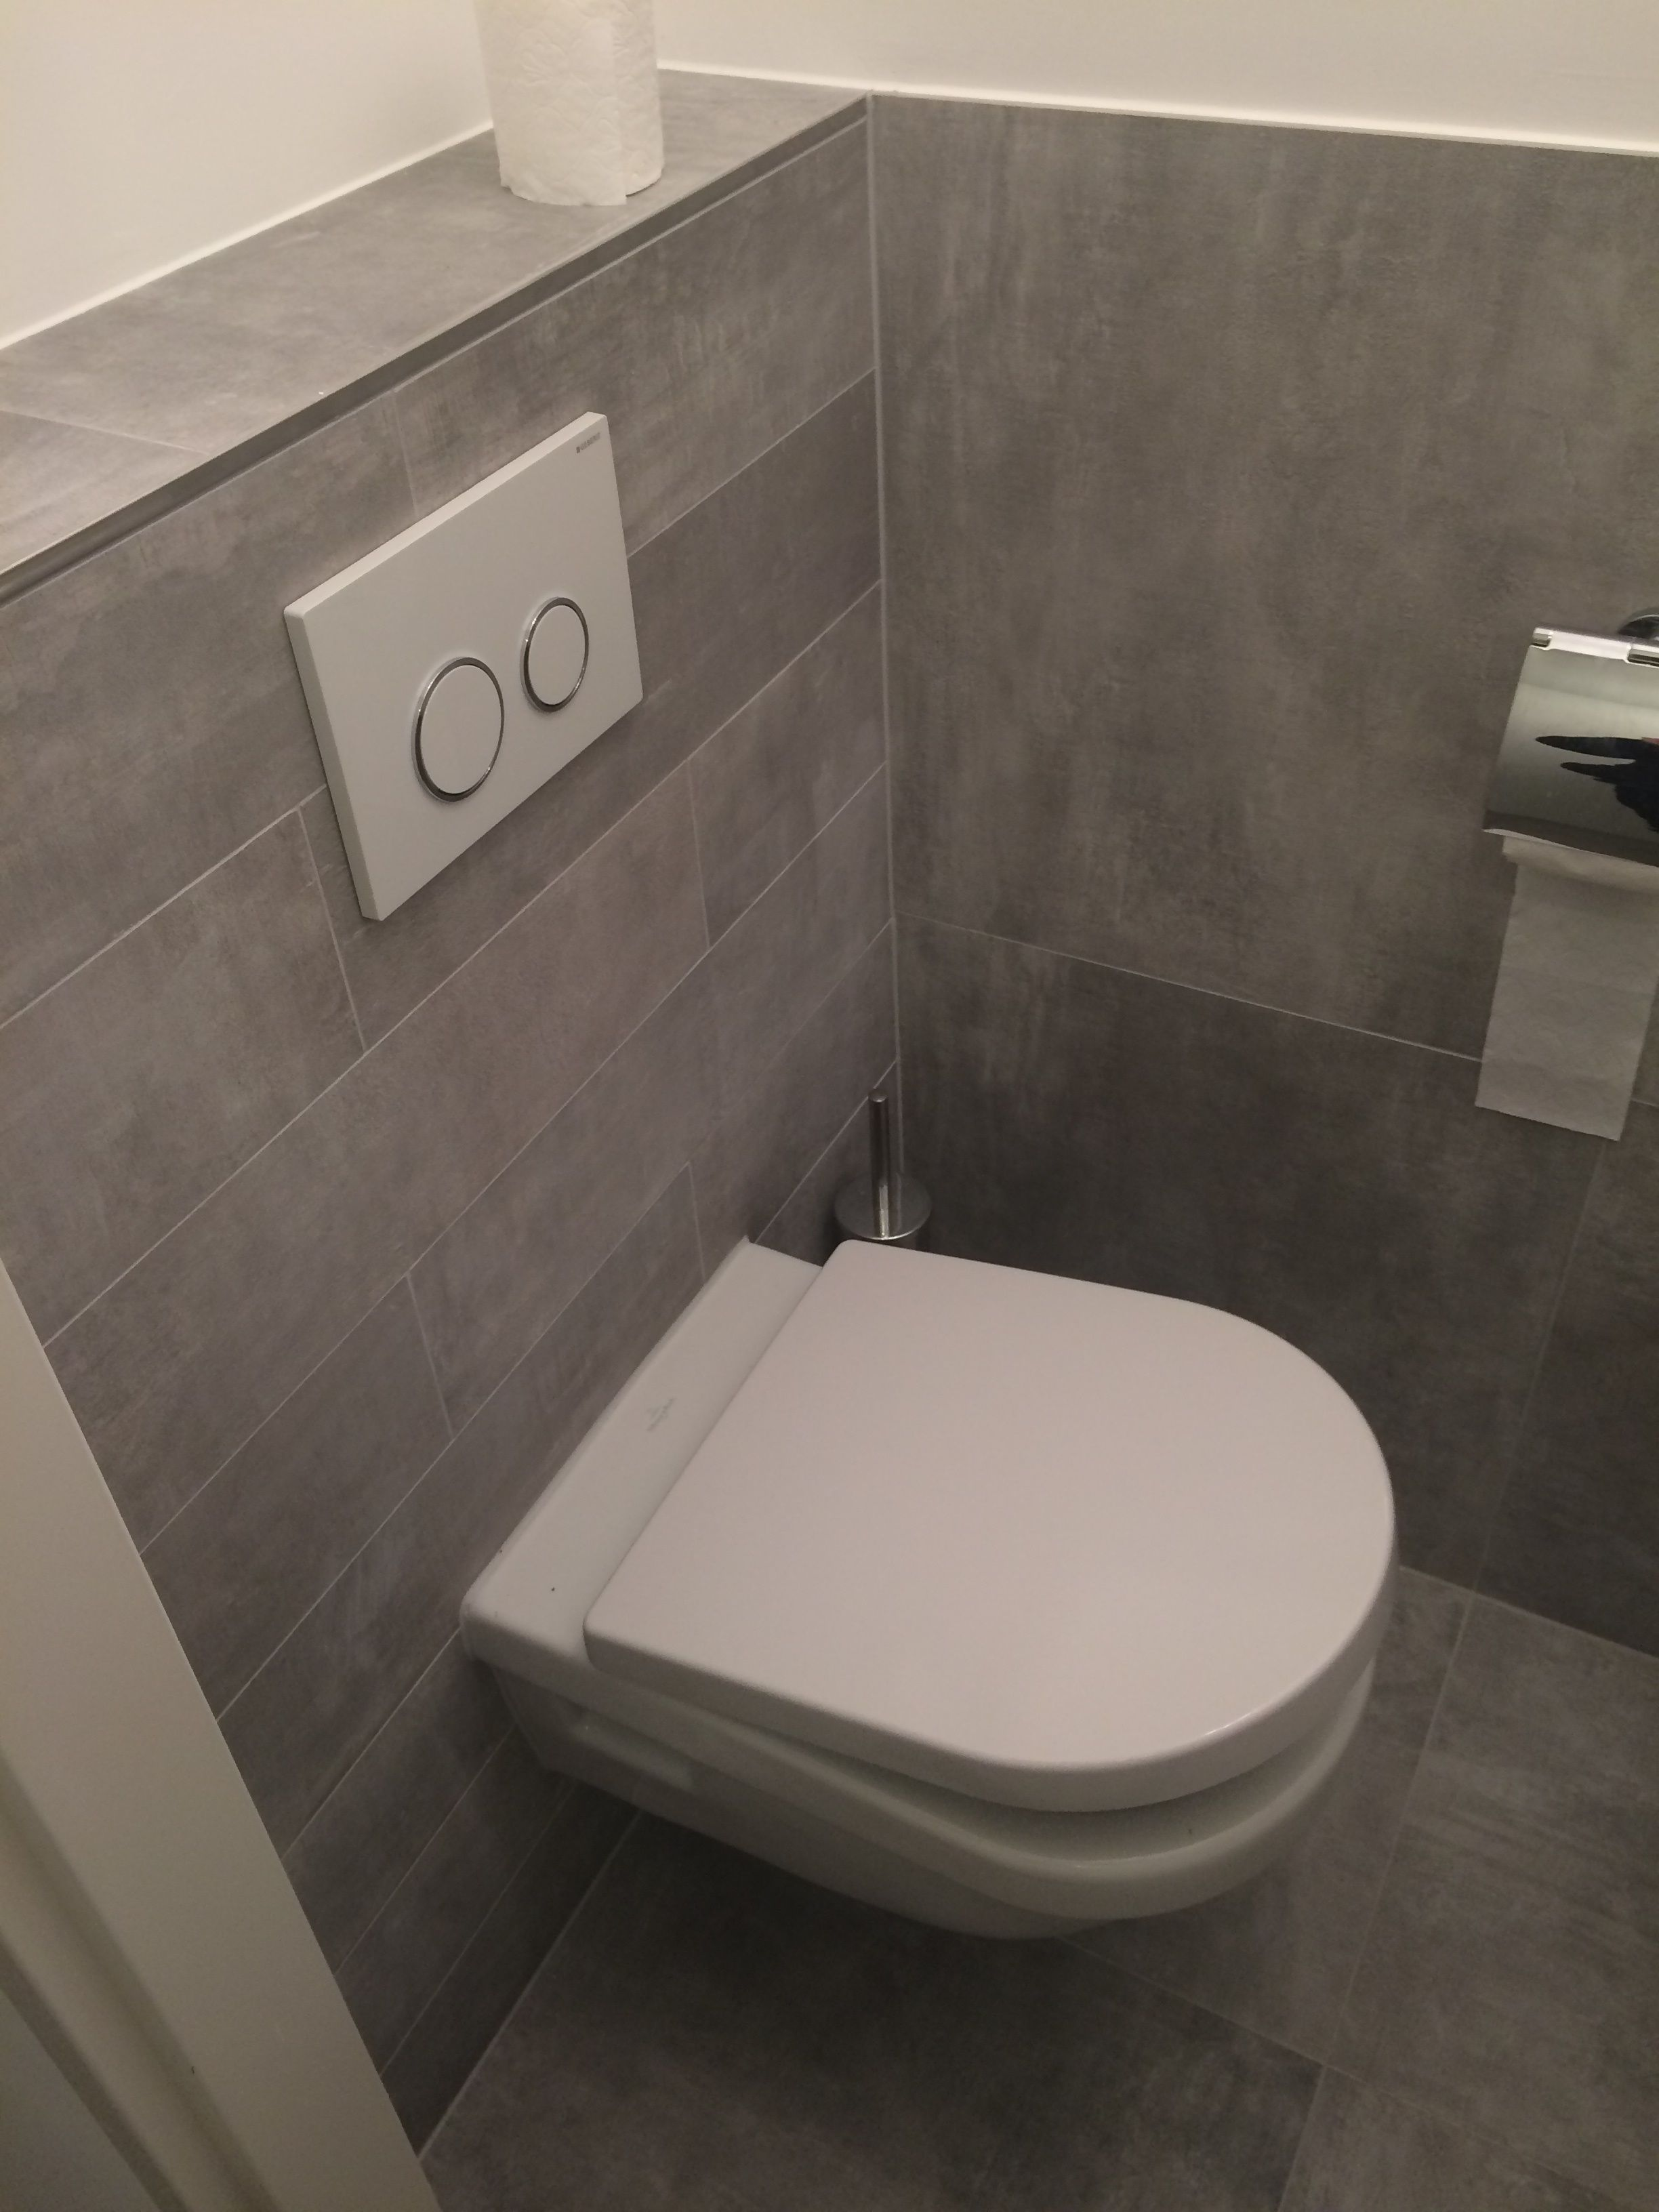 Betonlook tegels unicom starker icon dove grey unicom starker pinterest dove grey icons - Toilet tegel ...